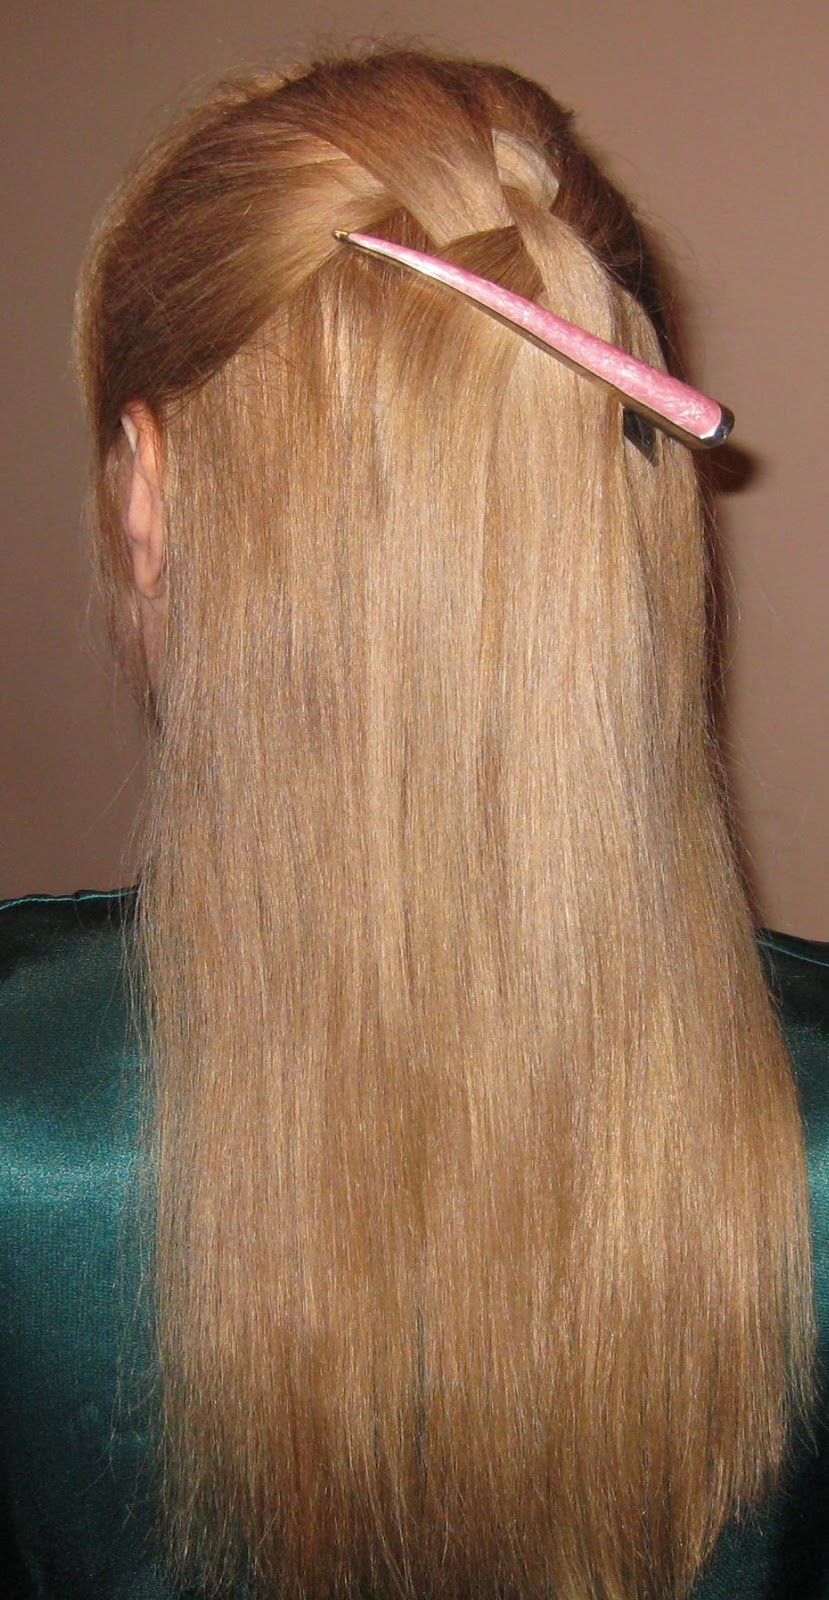 My Bumpy Middle Aged Long Hair Journey Hairstyle Mini Basket Weave